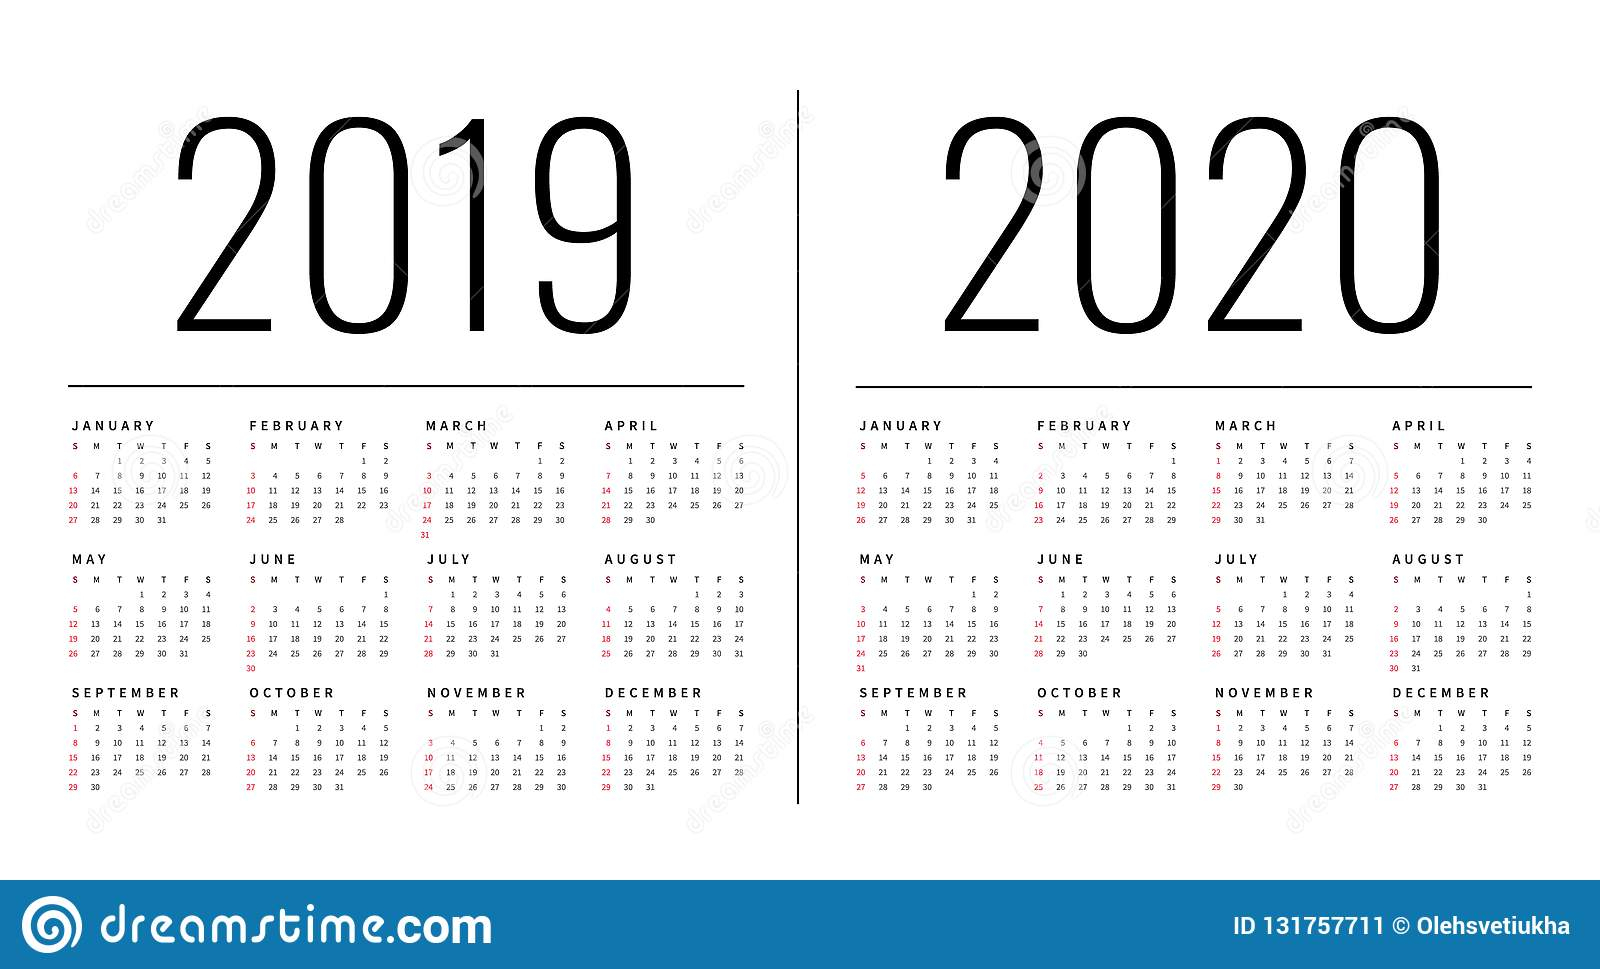 Mockup Simple Calendar Layout For 2019 And 2020 Years. Week throughout 2020 Calendar Mondays